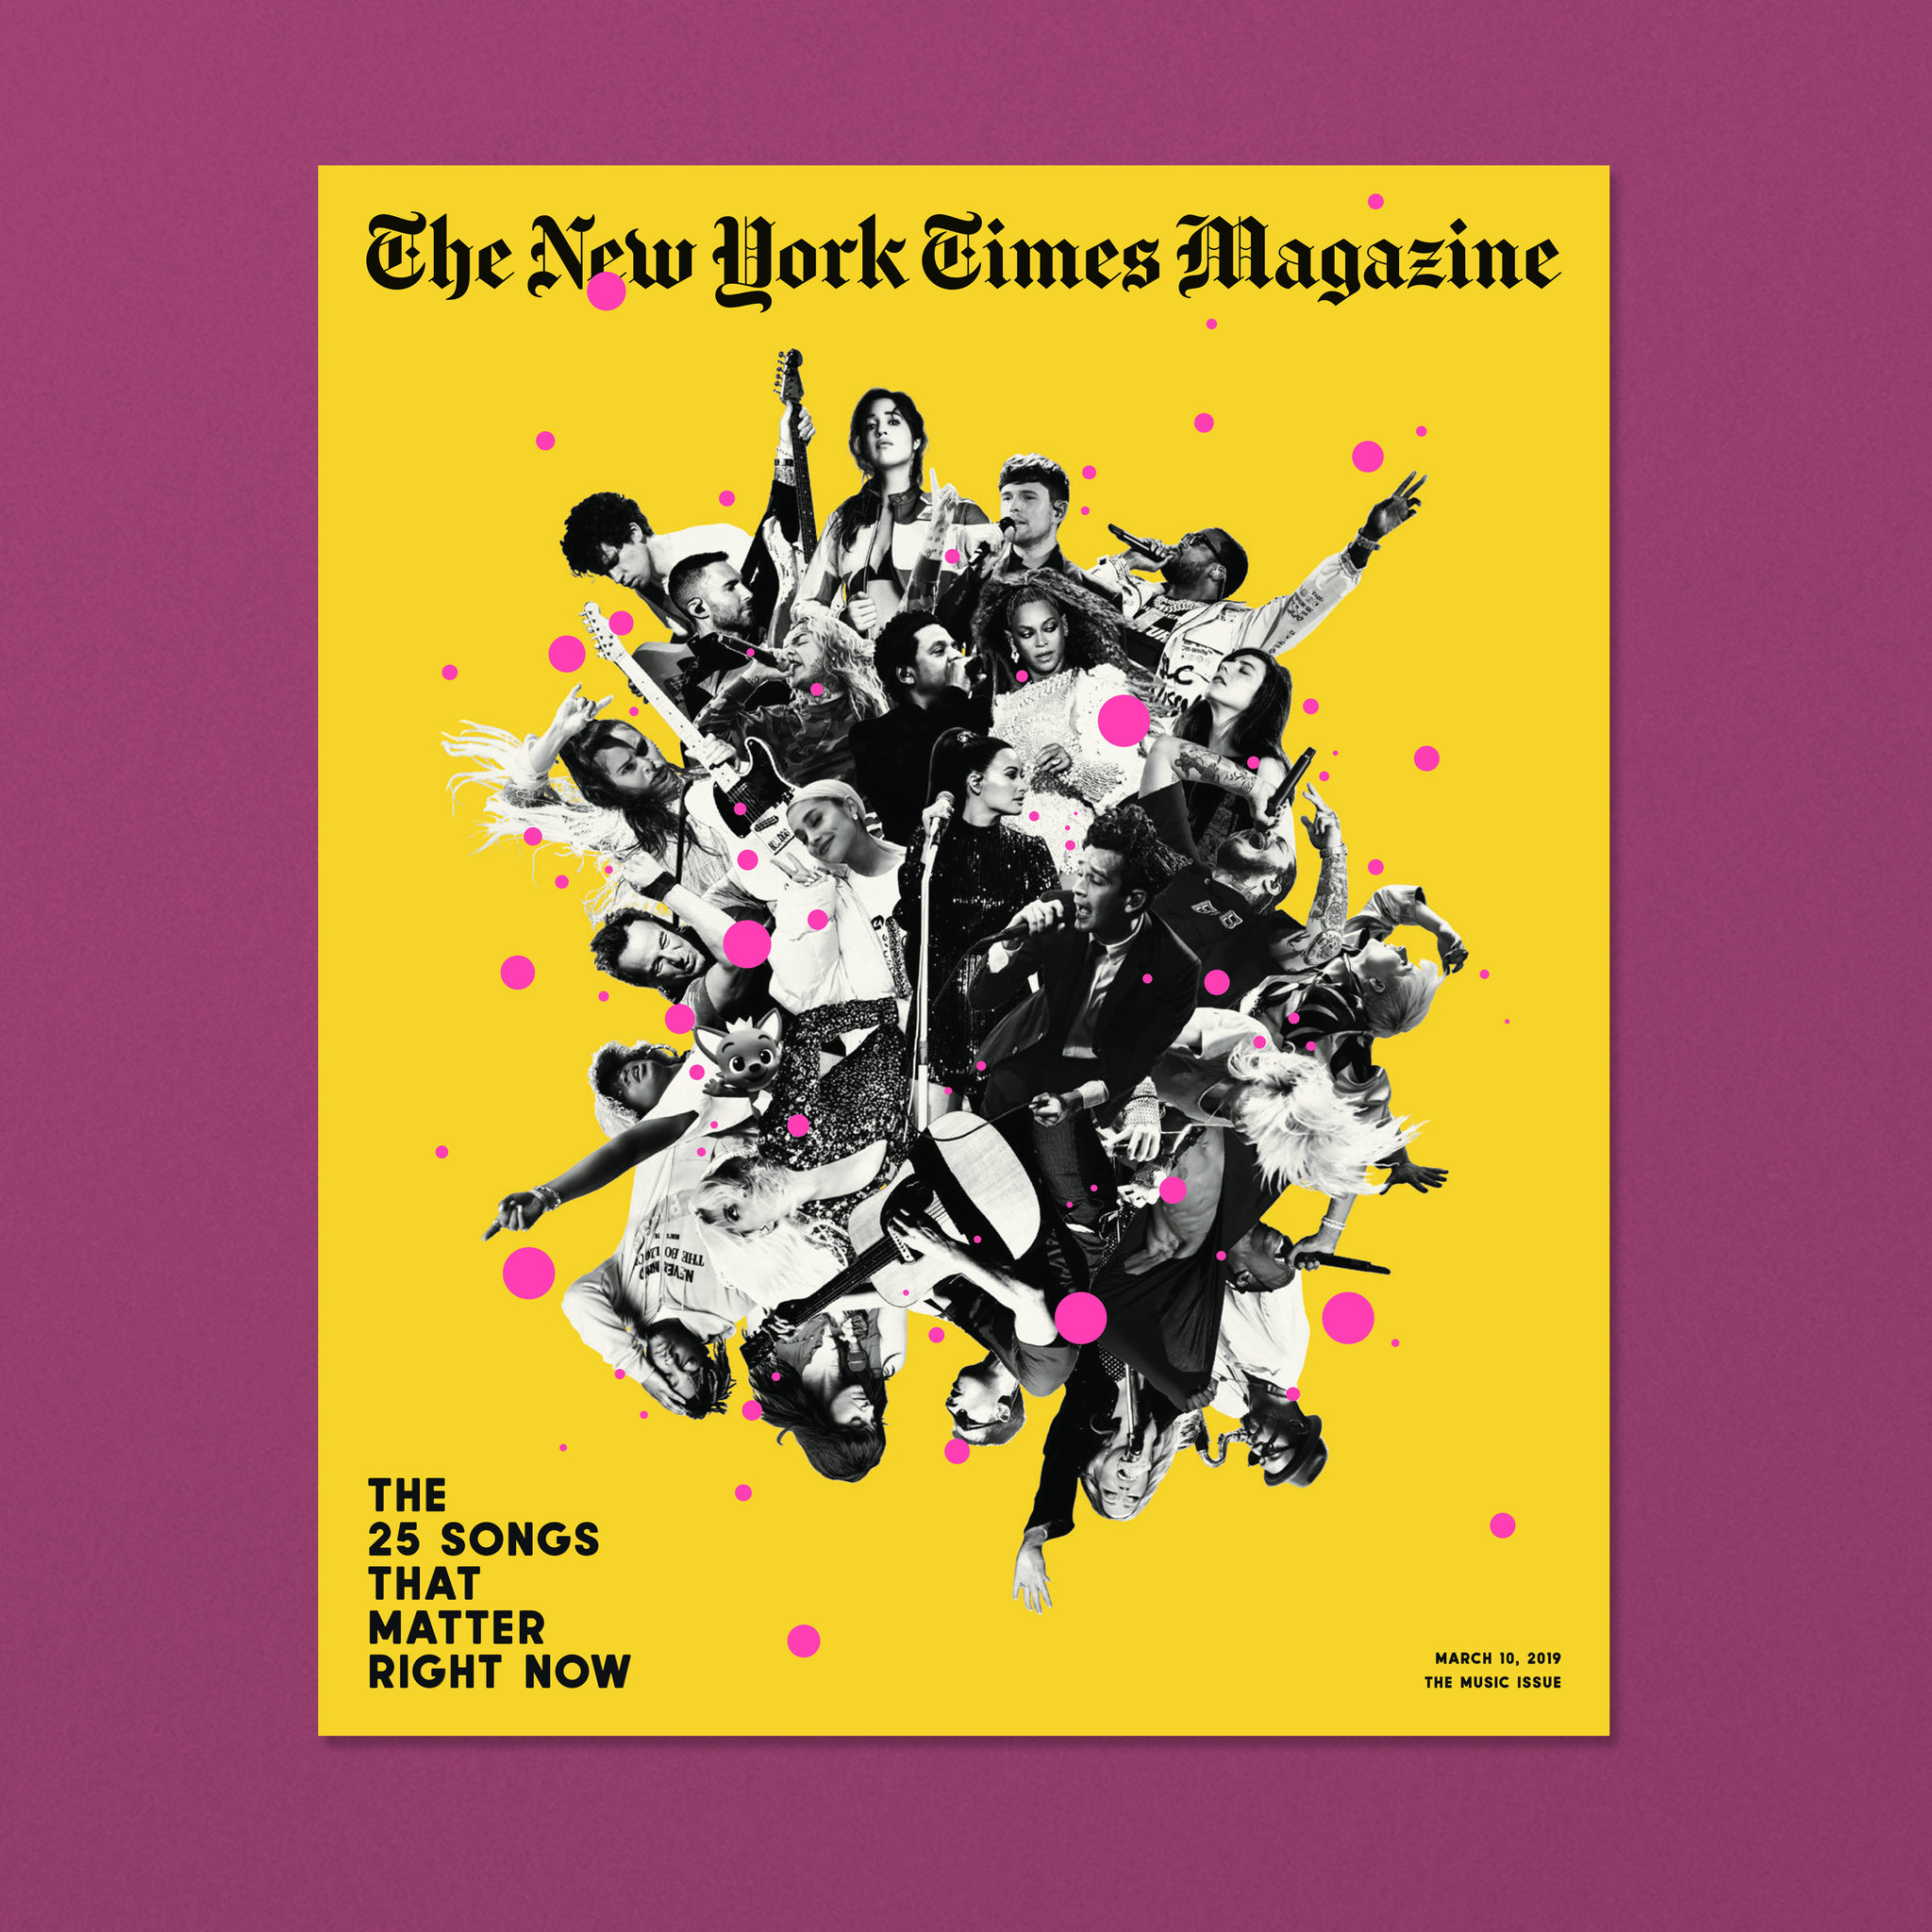 The new york times music